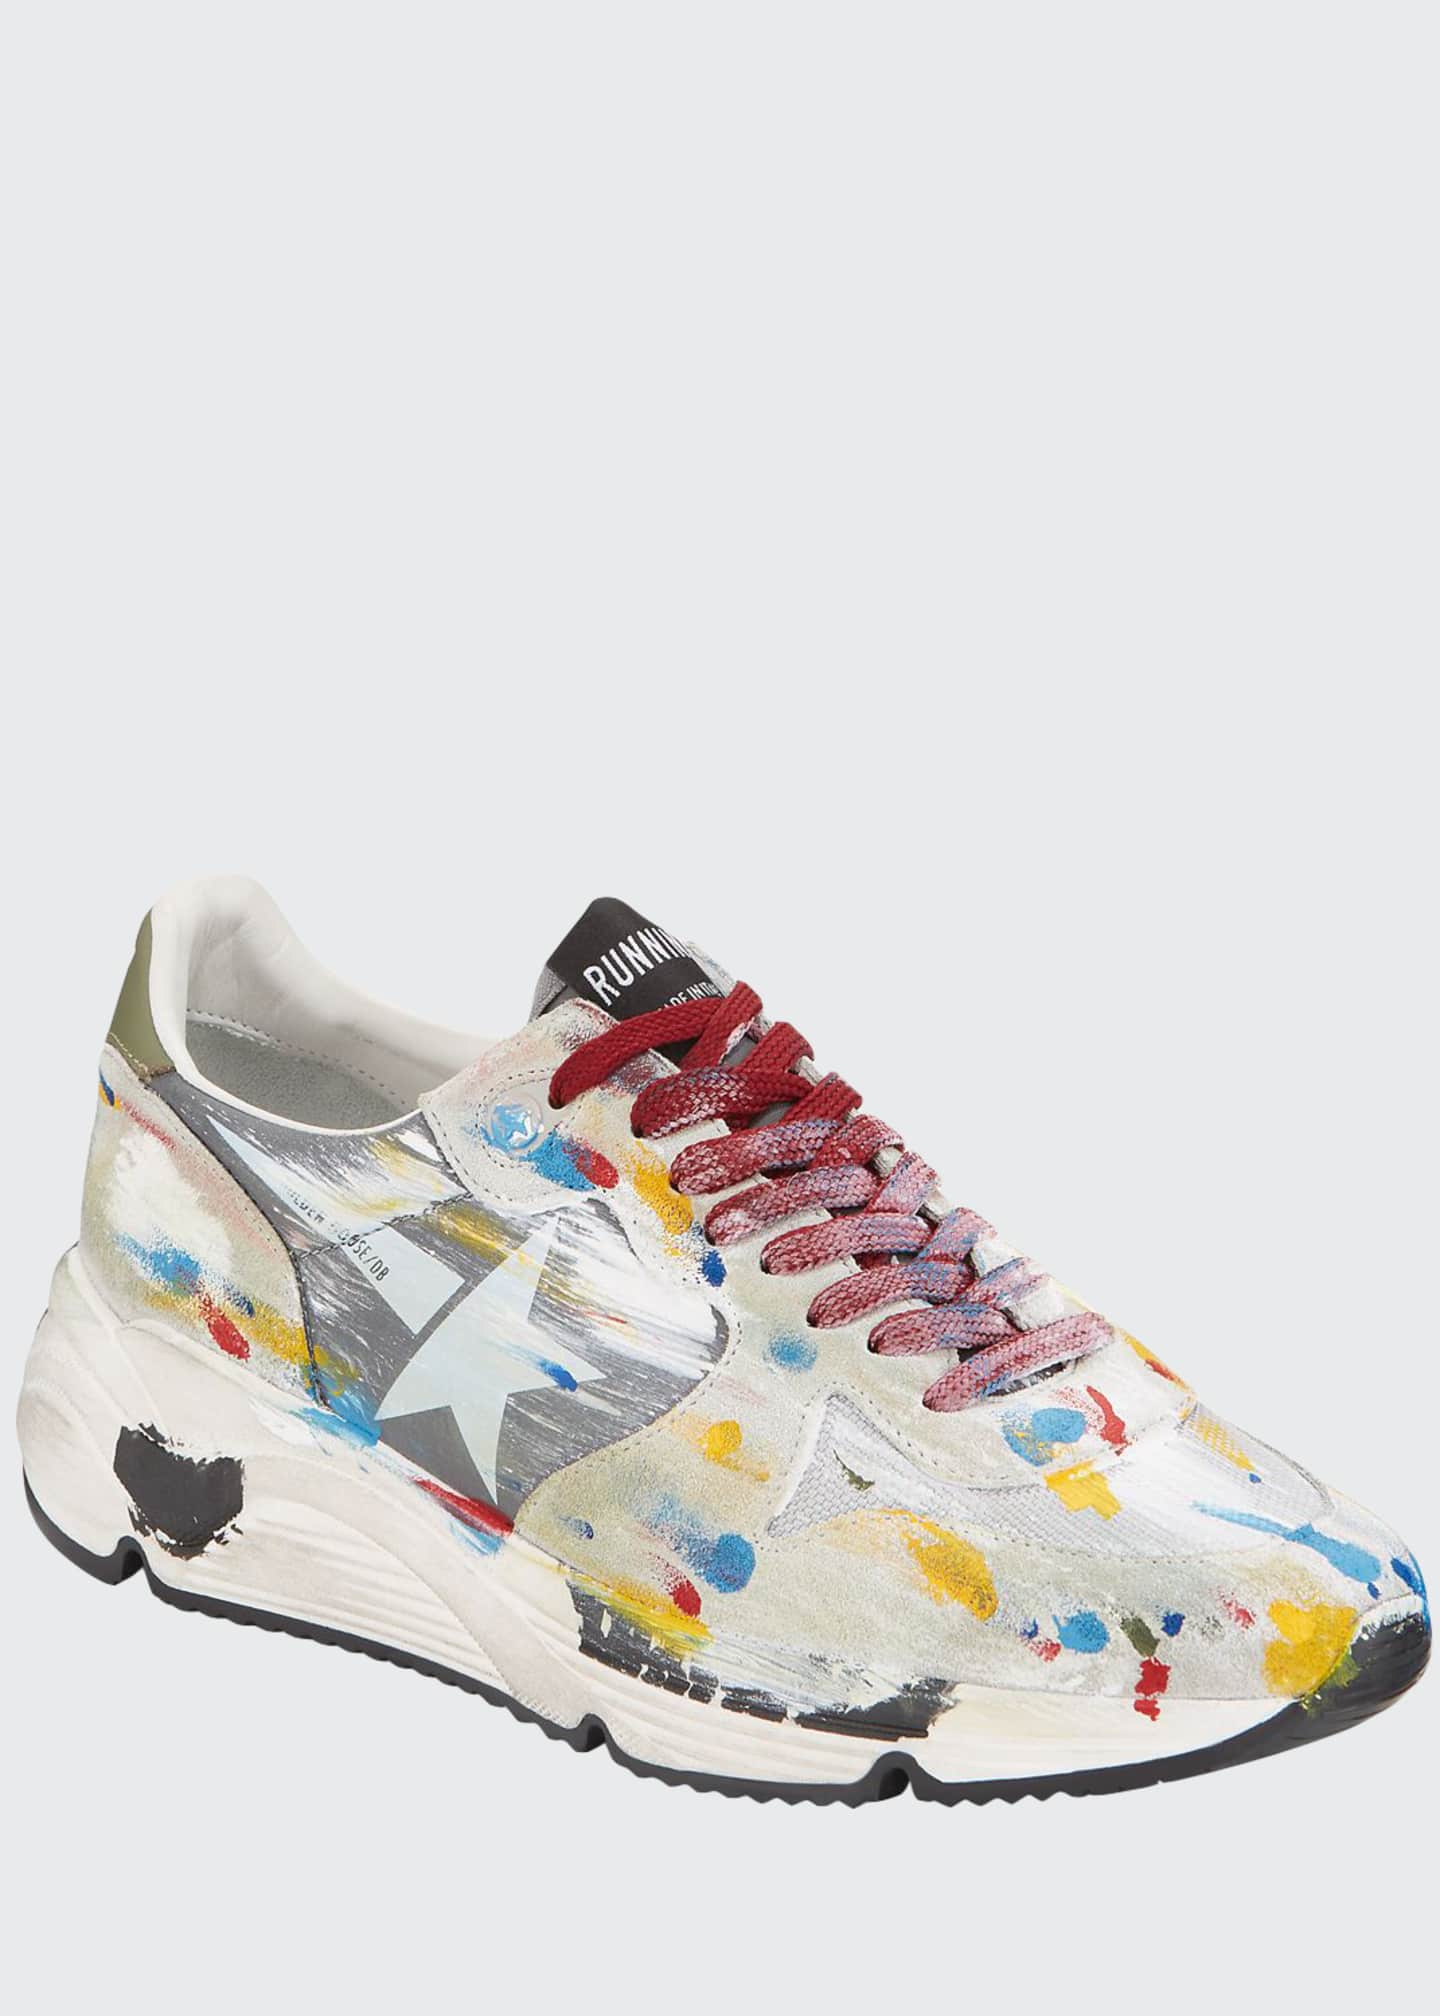 Golden Goose Men's Paint-Splatter Suede Running Sneakers